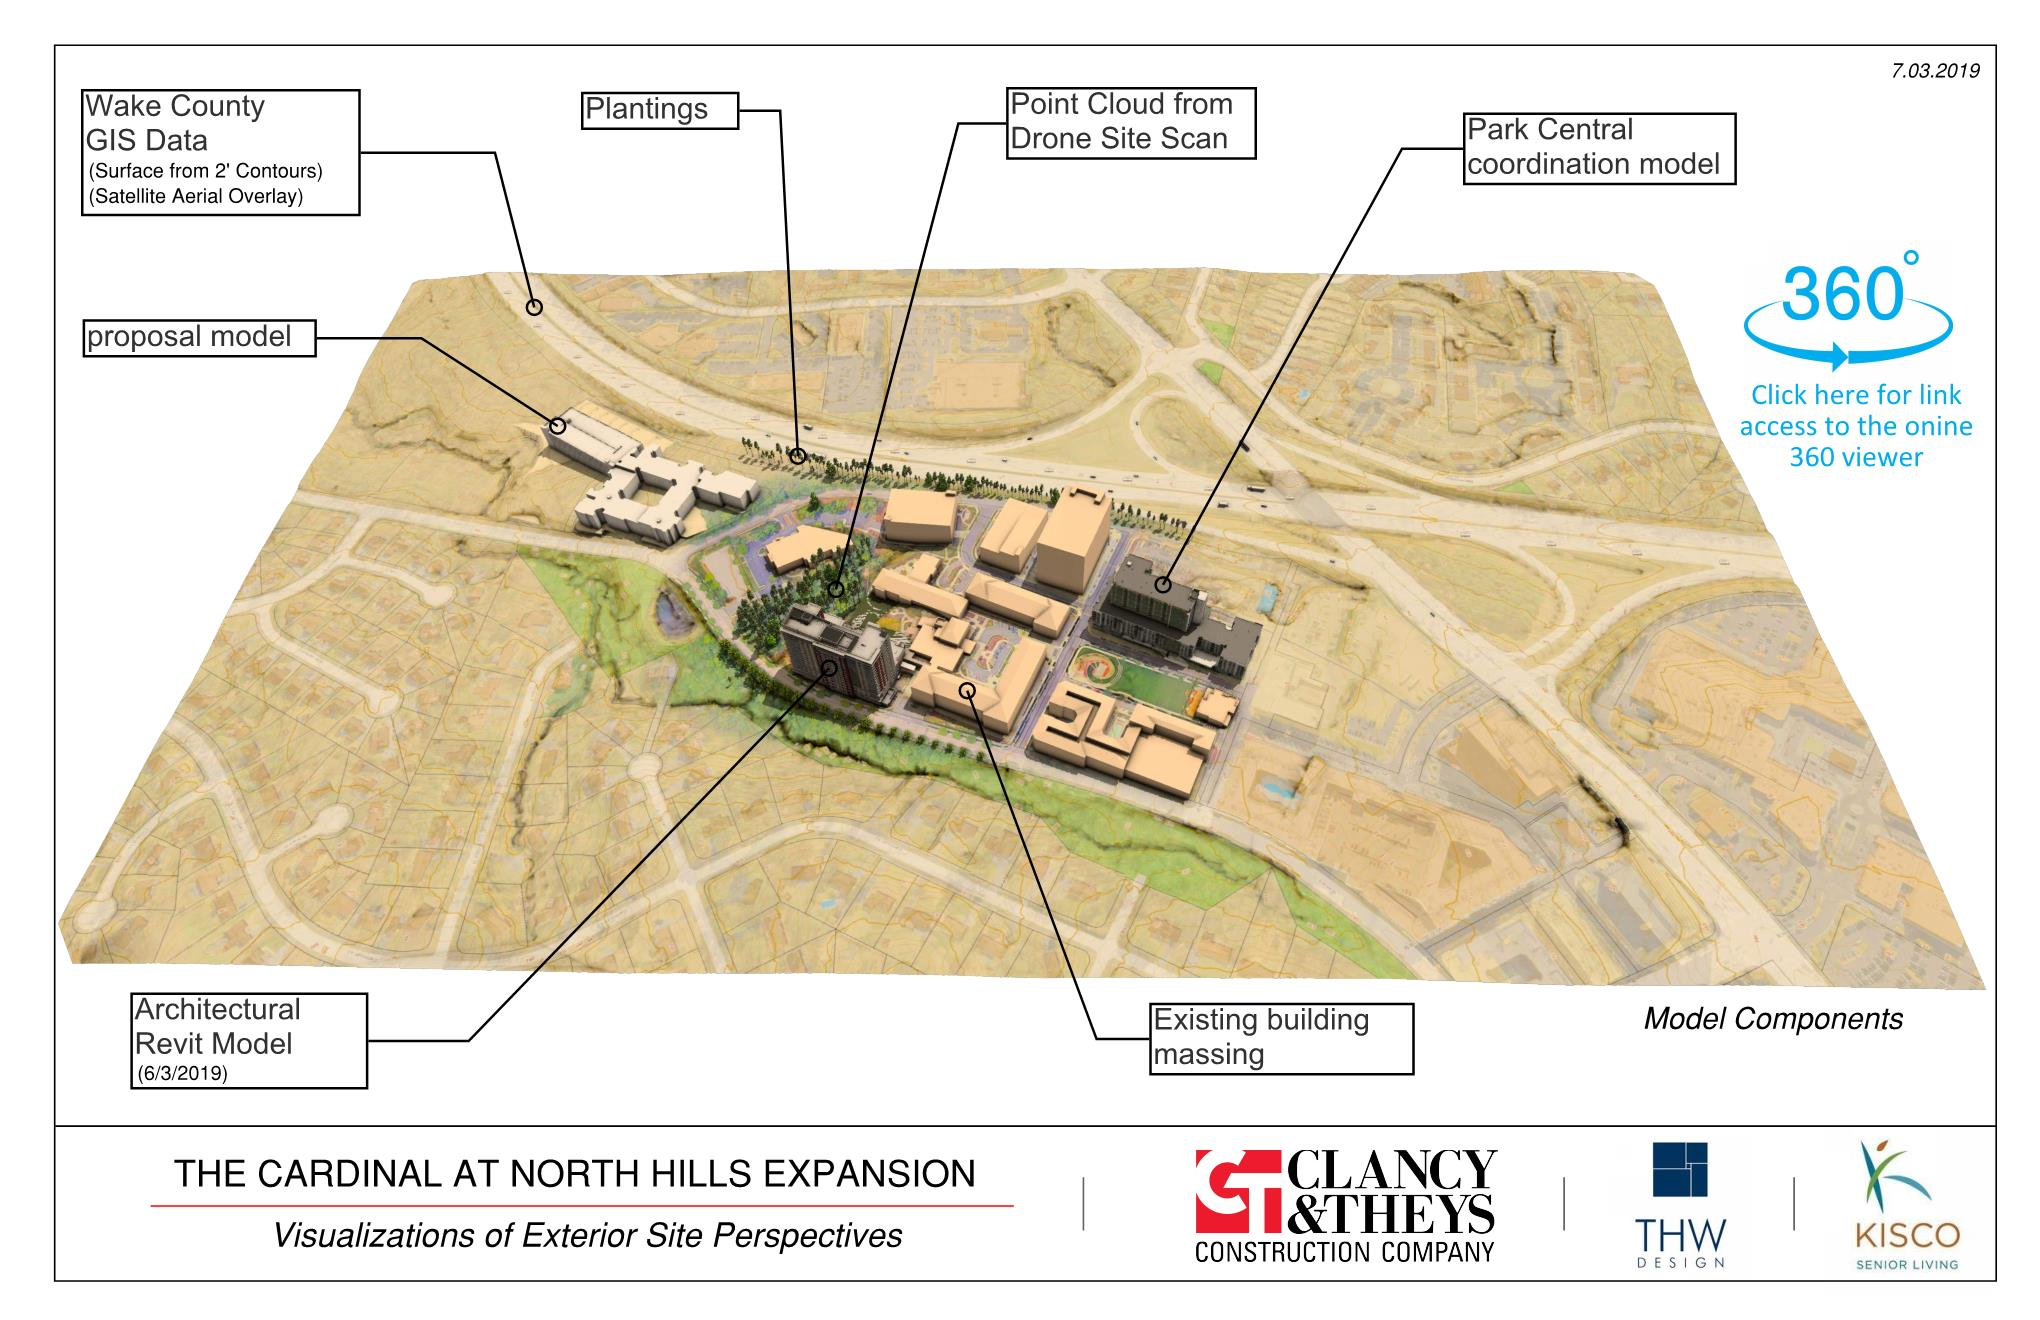 Cardinal at North Hills Expansion - Visualization of Site Perspectives